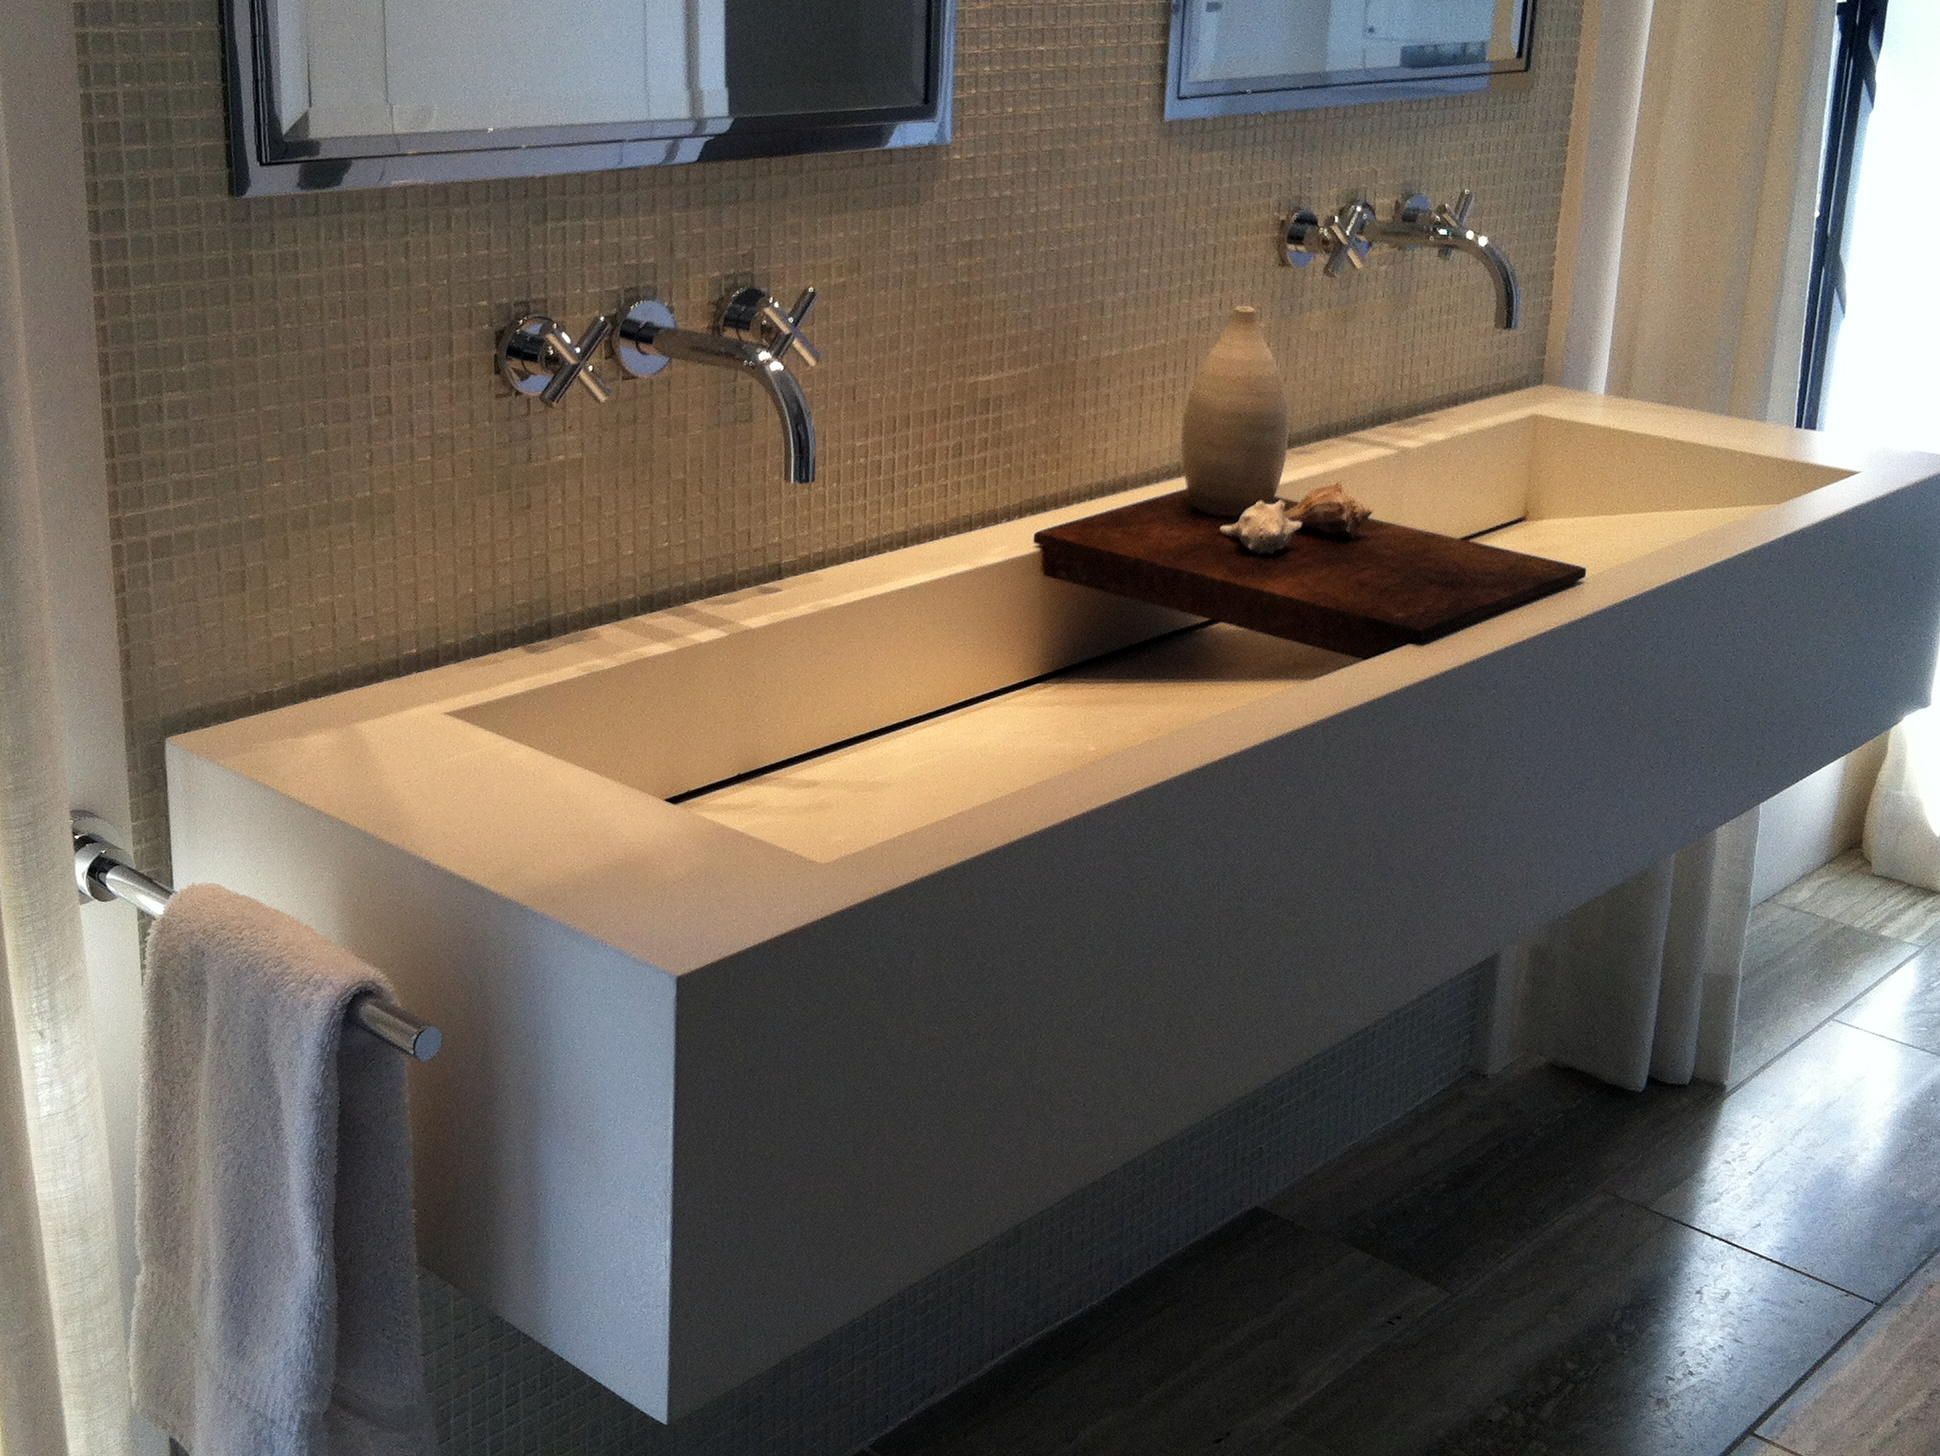 Sophisticated White Commercial Trough Sink With Wooden Soap Dish - Best bathroom faucets to buy for bathroom decor ideas